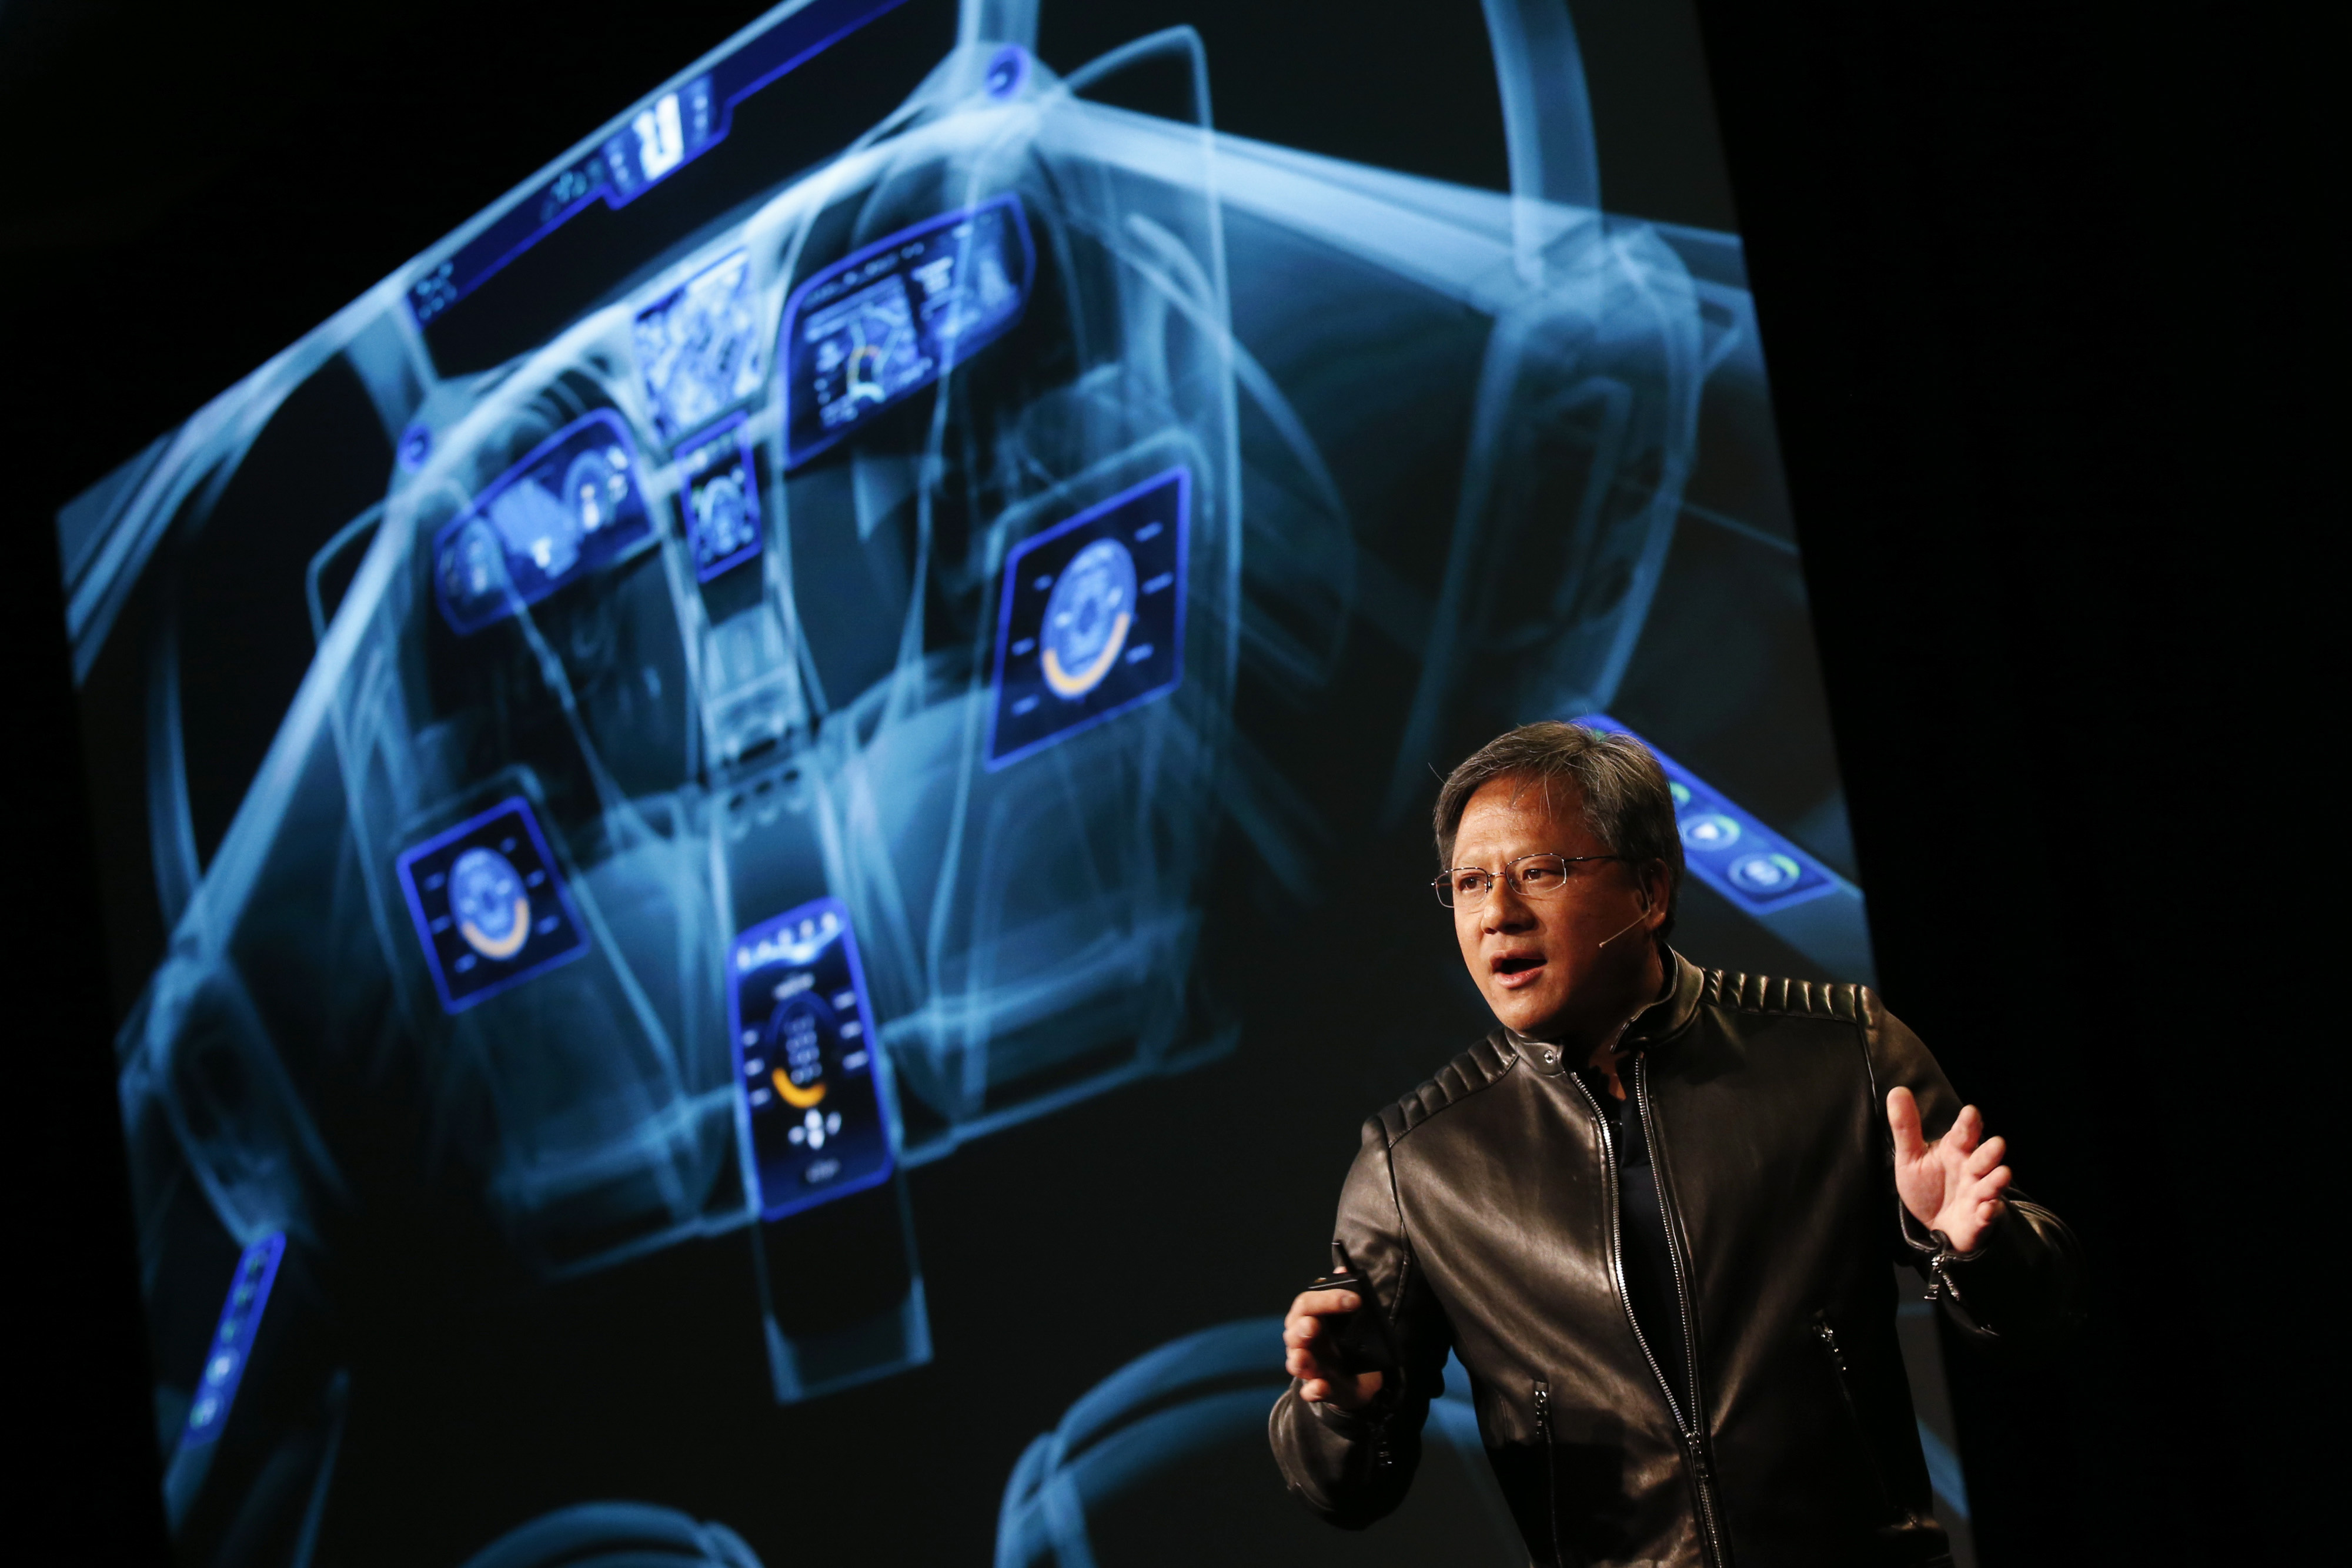 Jen-Hsun Huang, chief executive officer of Nvidia Corp., introduces the Drive CX Digital Cockpit Computer during a news conference ahead of CES on Jan. 4, 2015.